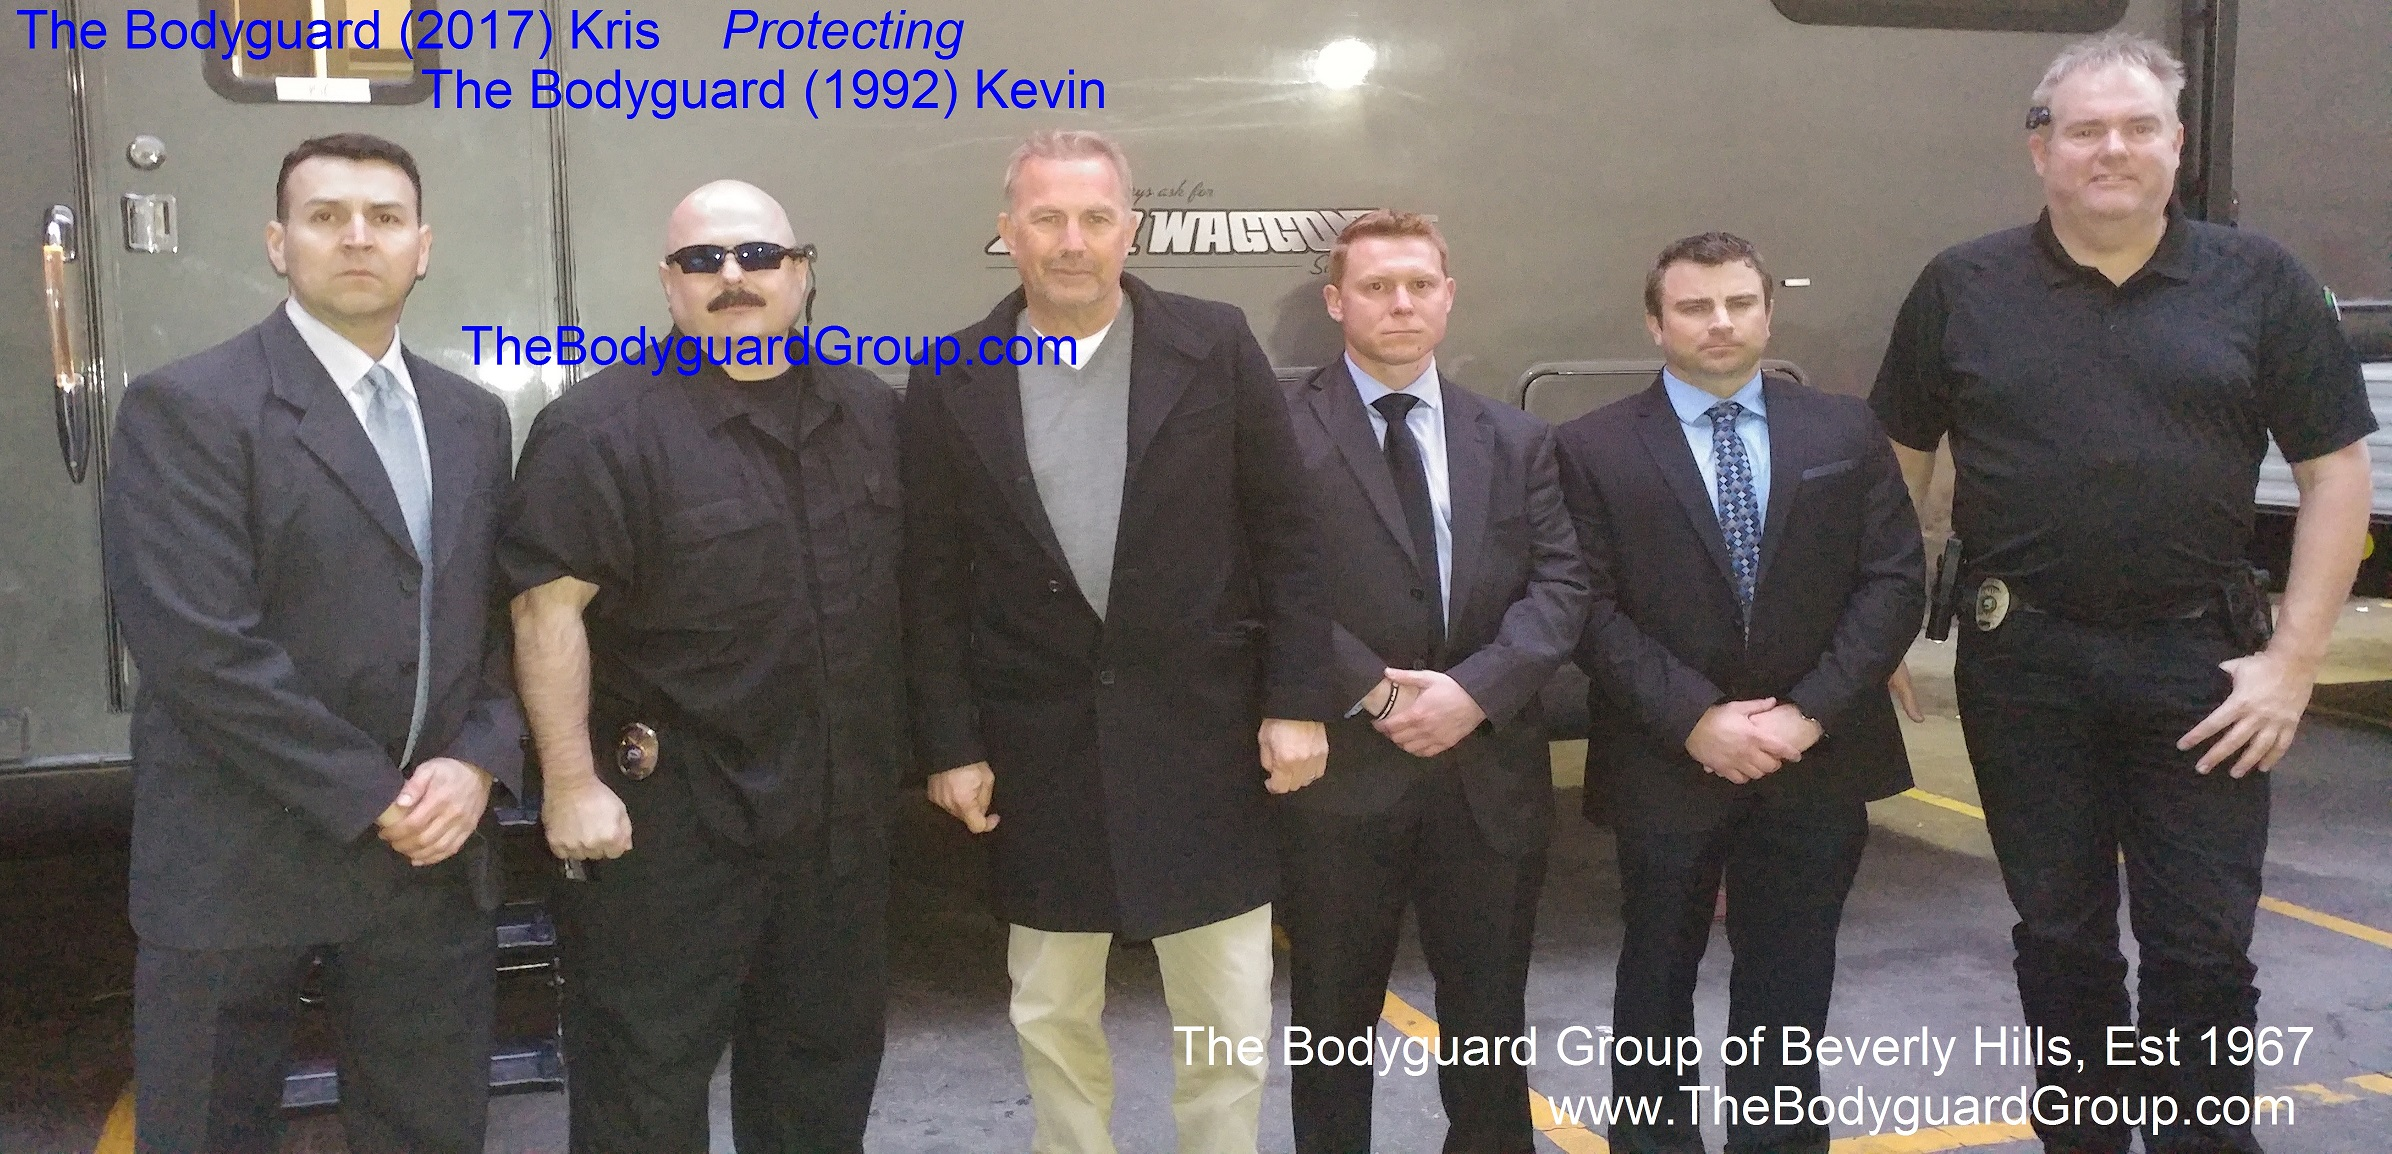 Executive Bodyguard Services Limited